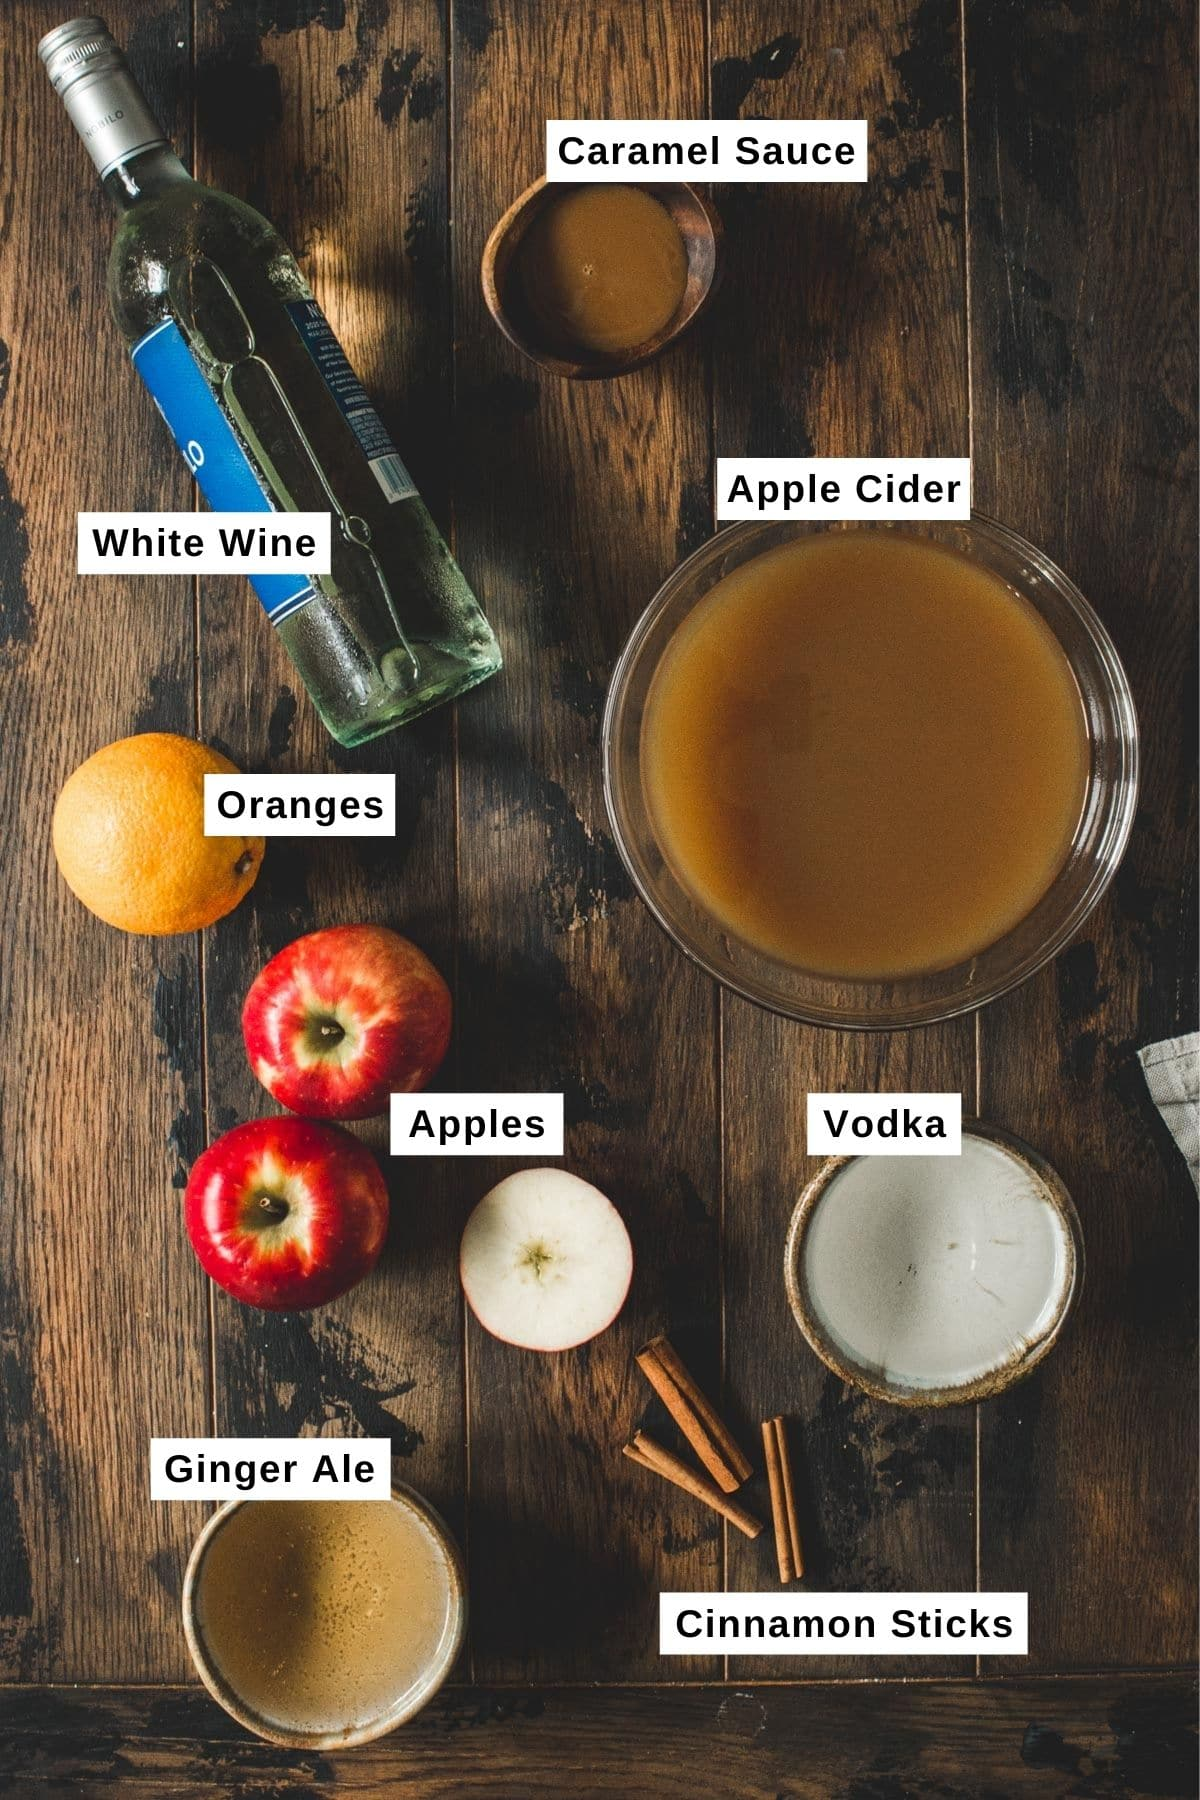 Caramel apple sangria ingredients on a wooden table.